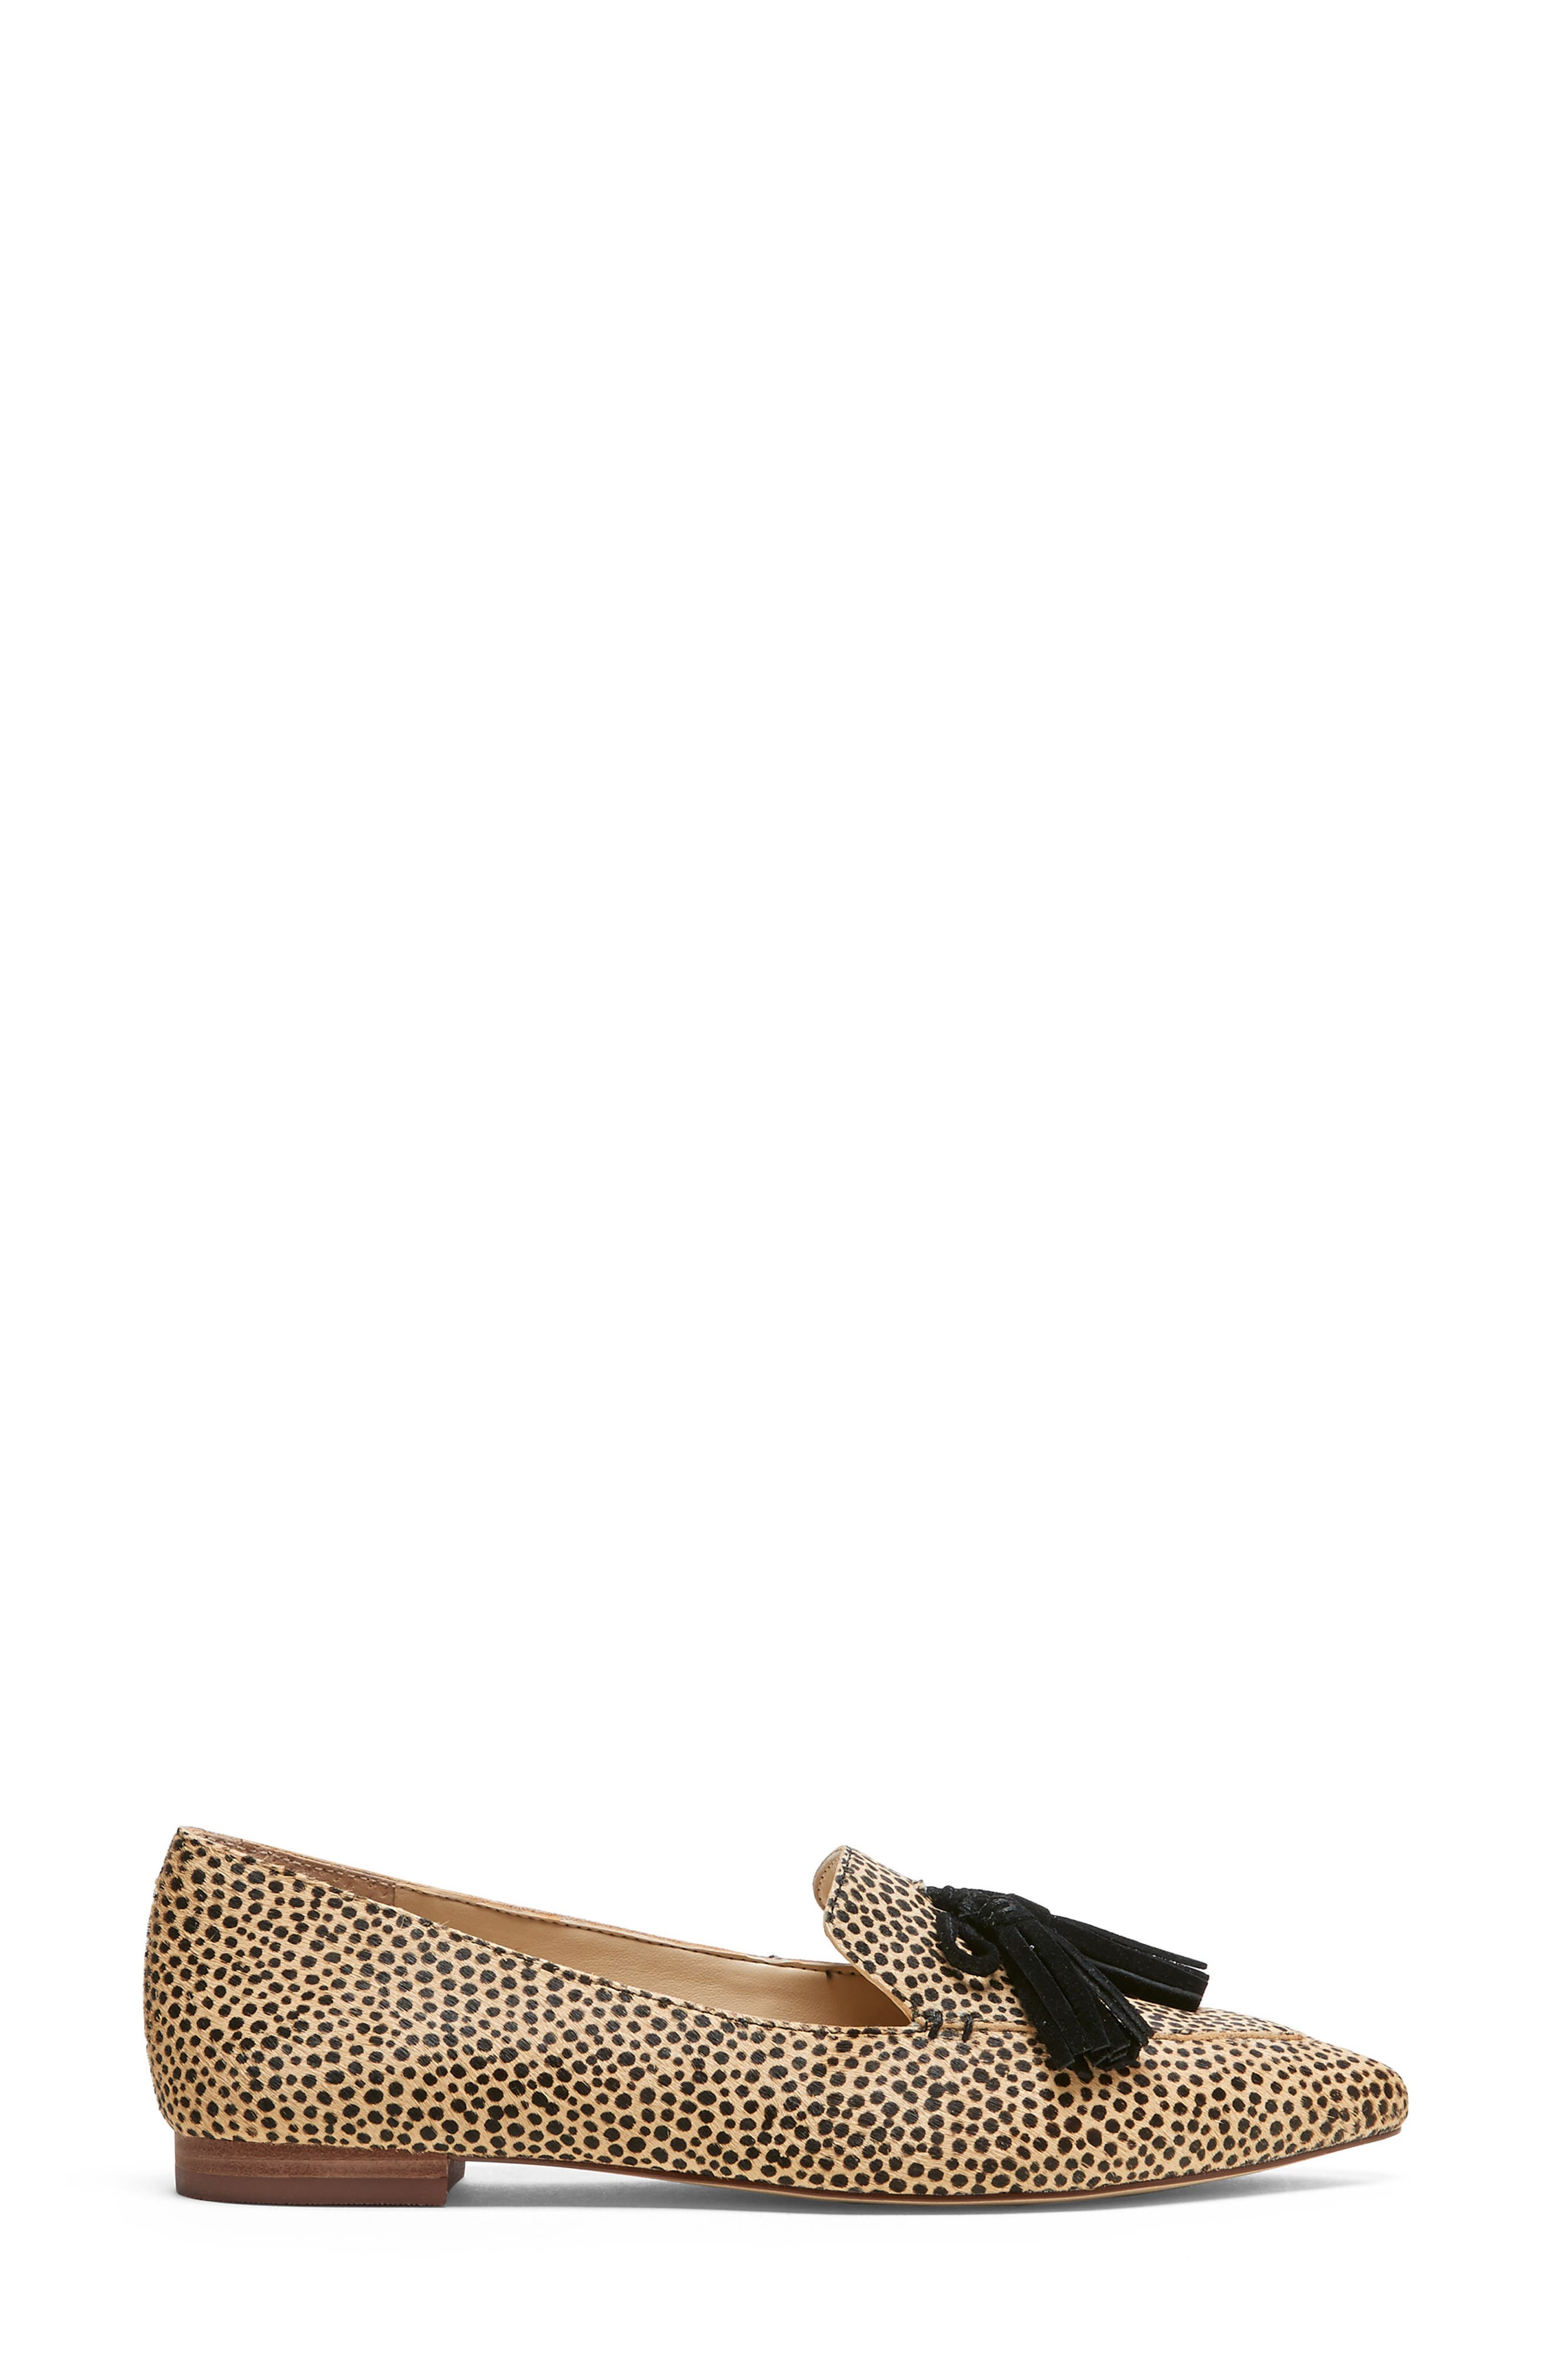 SOLE SOCIETY, Hadlee Loafer, Alternate thumbnail 2, color, DOTTED CALF HAIR